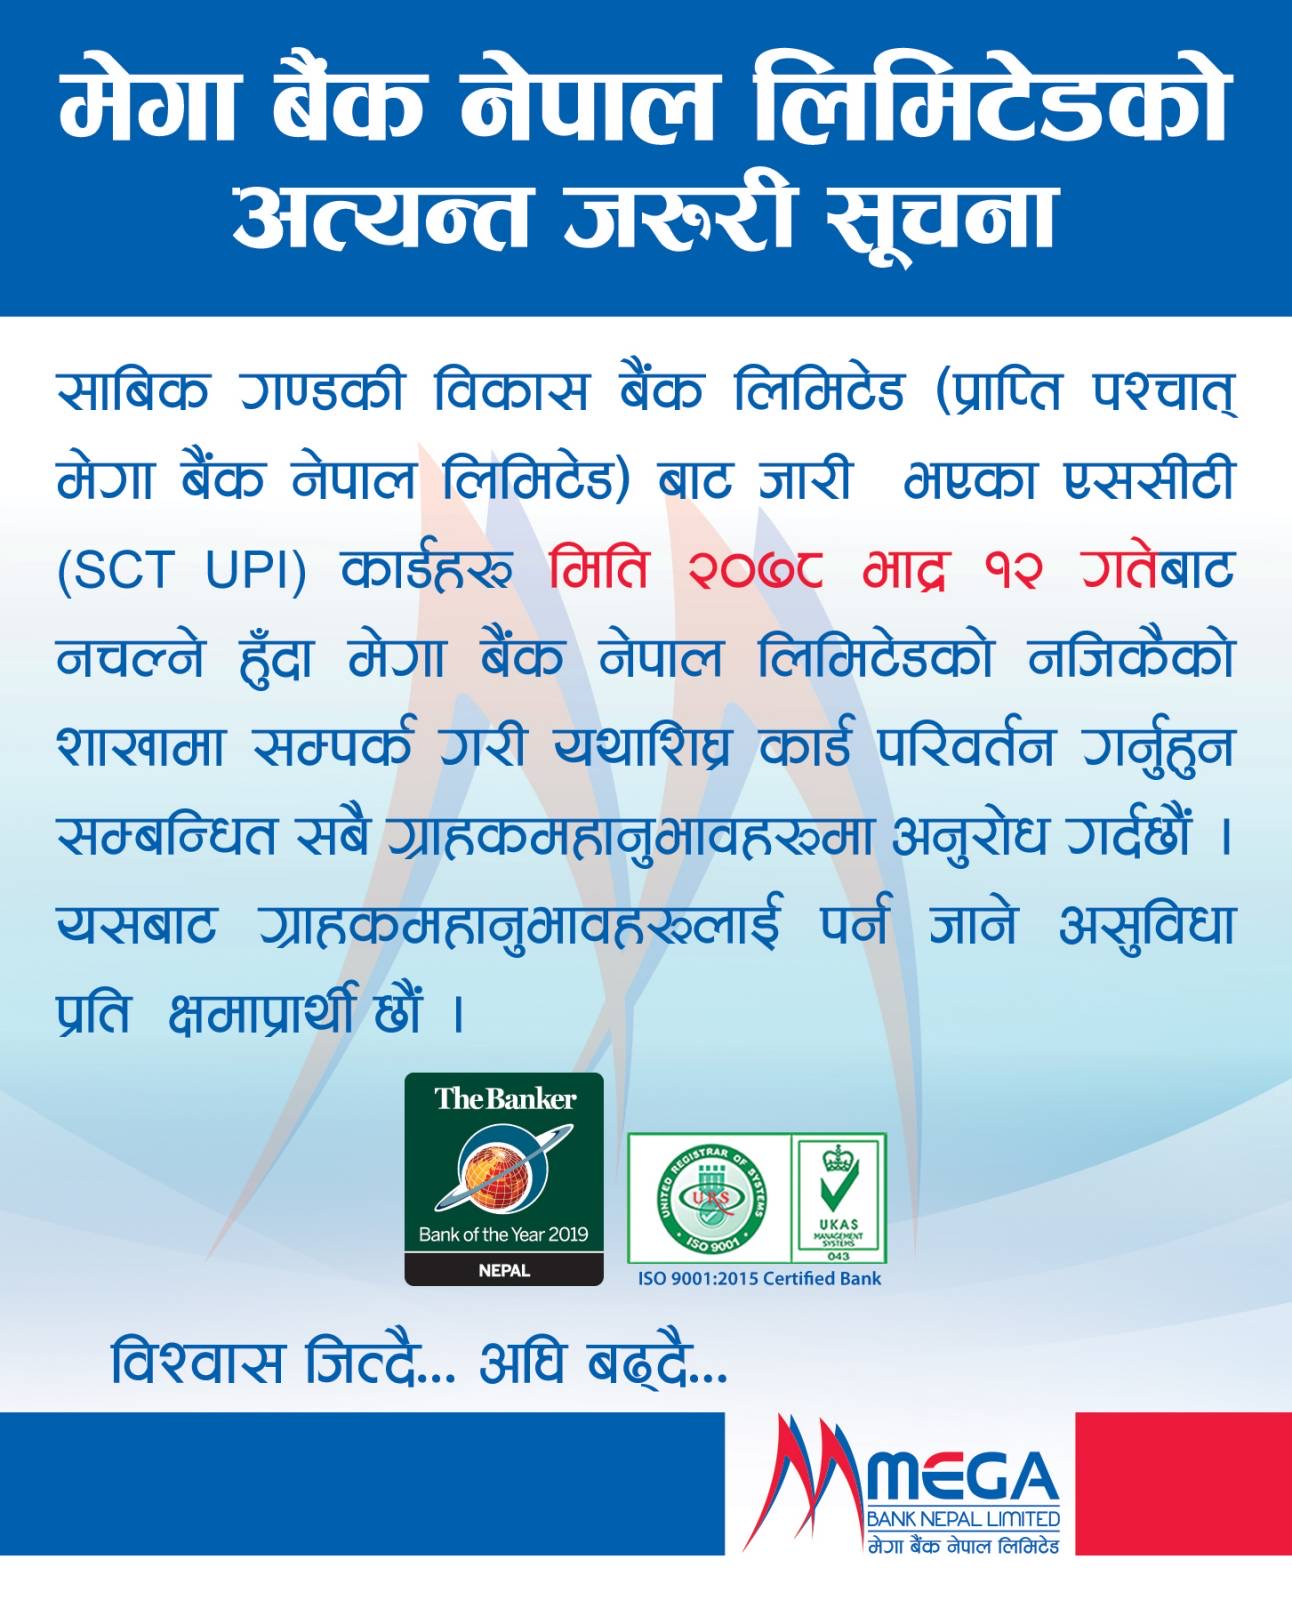 Notice- Related to SCT Card img